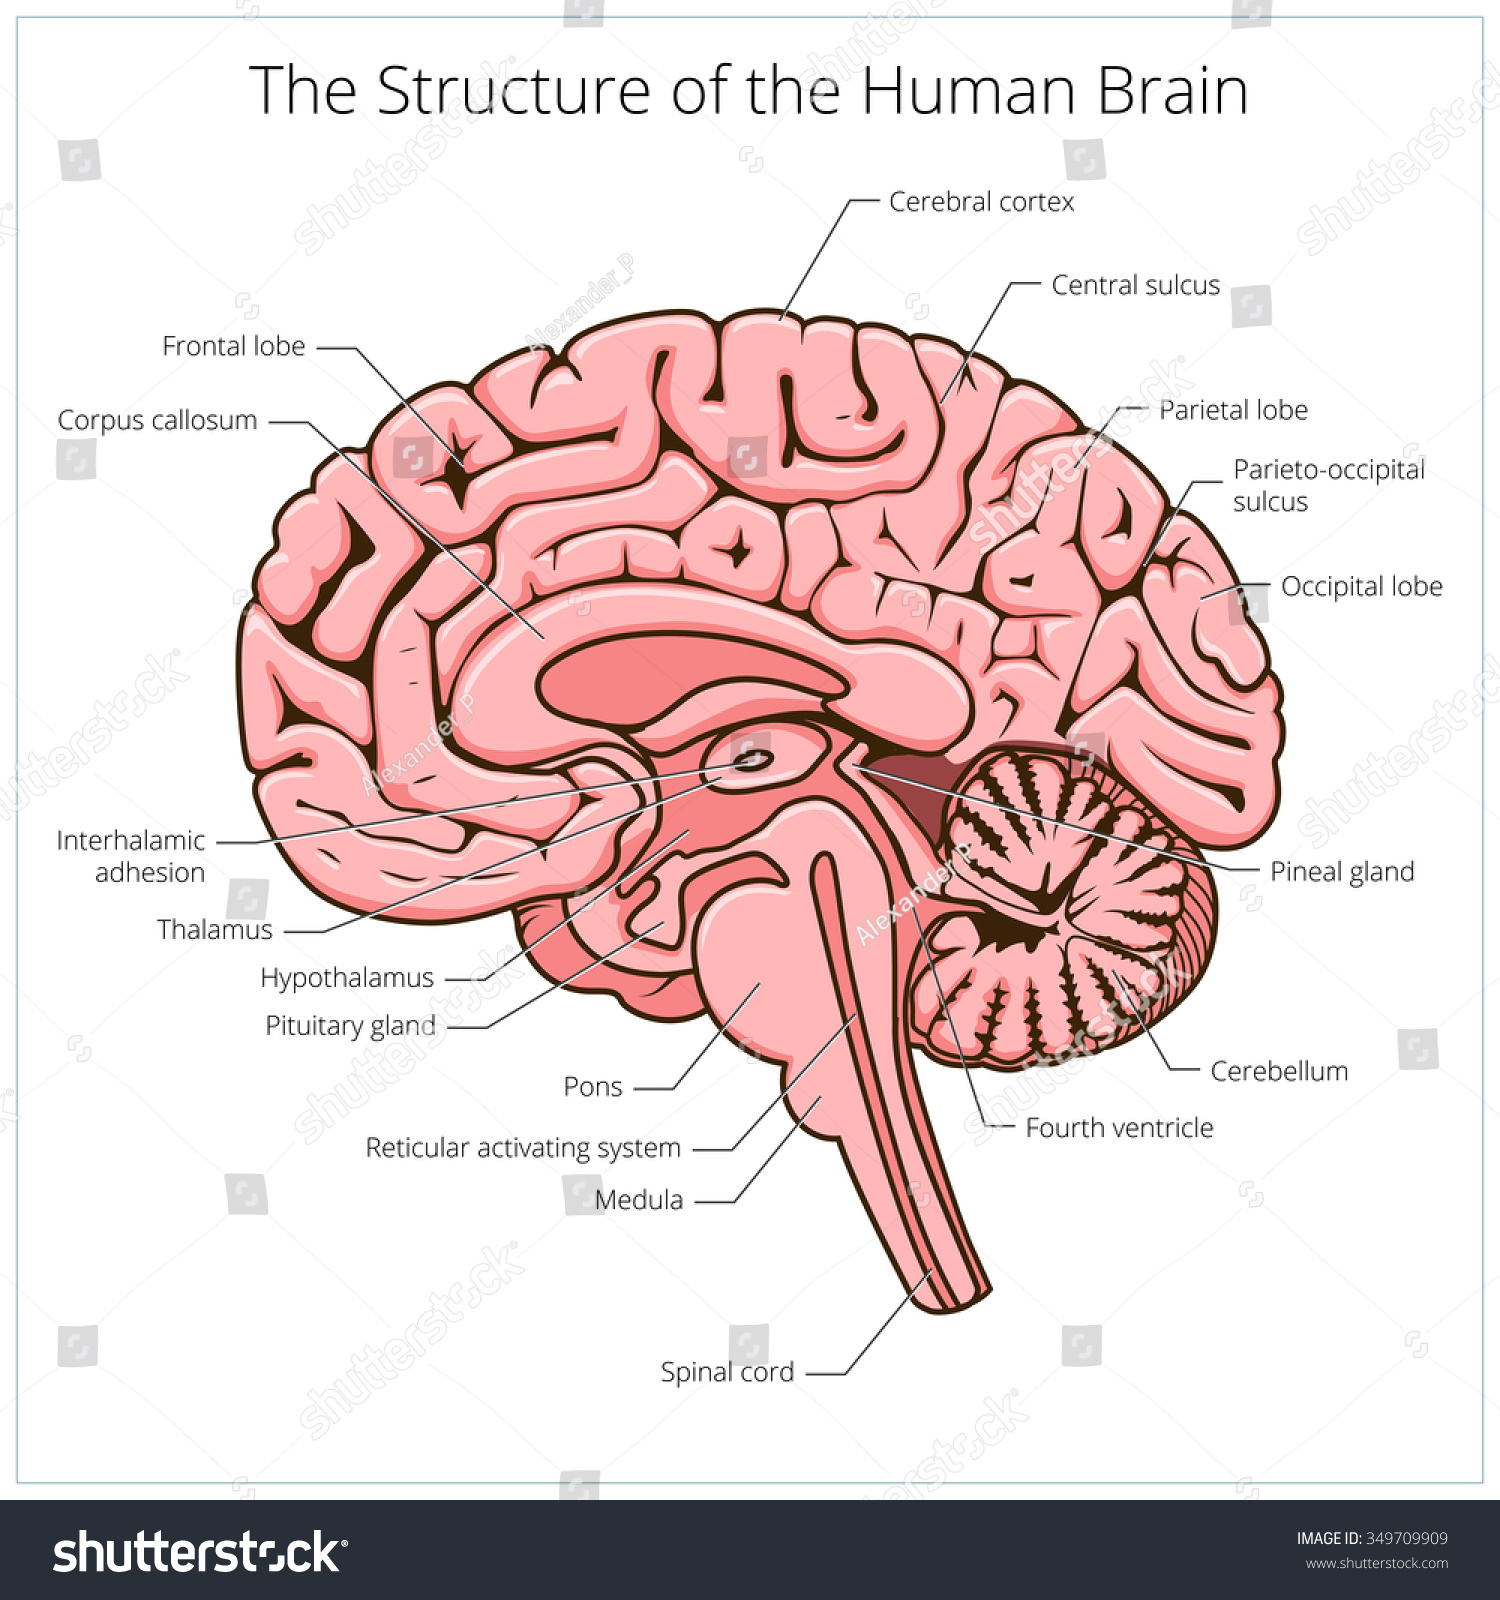 human brain diagram cerebrum wiring a house youtube structure section schematic raster stock